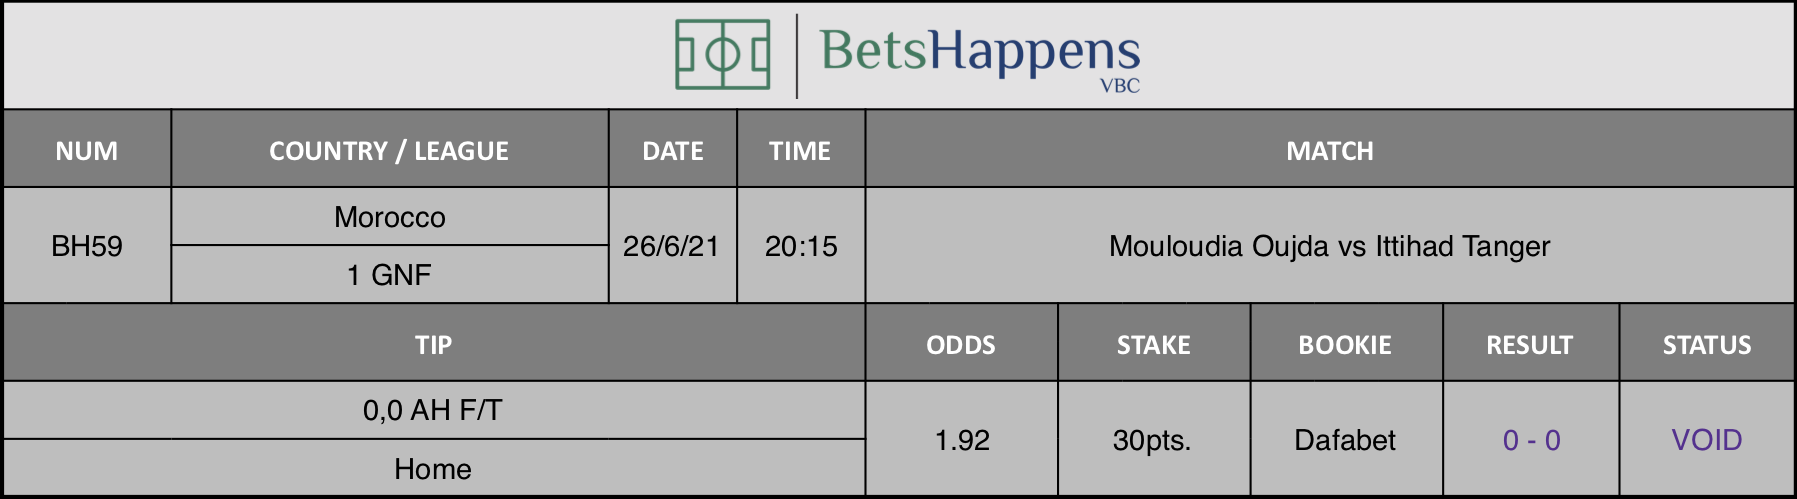 Results of our tip for the Mouloudia Oujda vs Ittihad Tanger match 0,0 AH F/T Home is recommended.